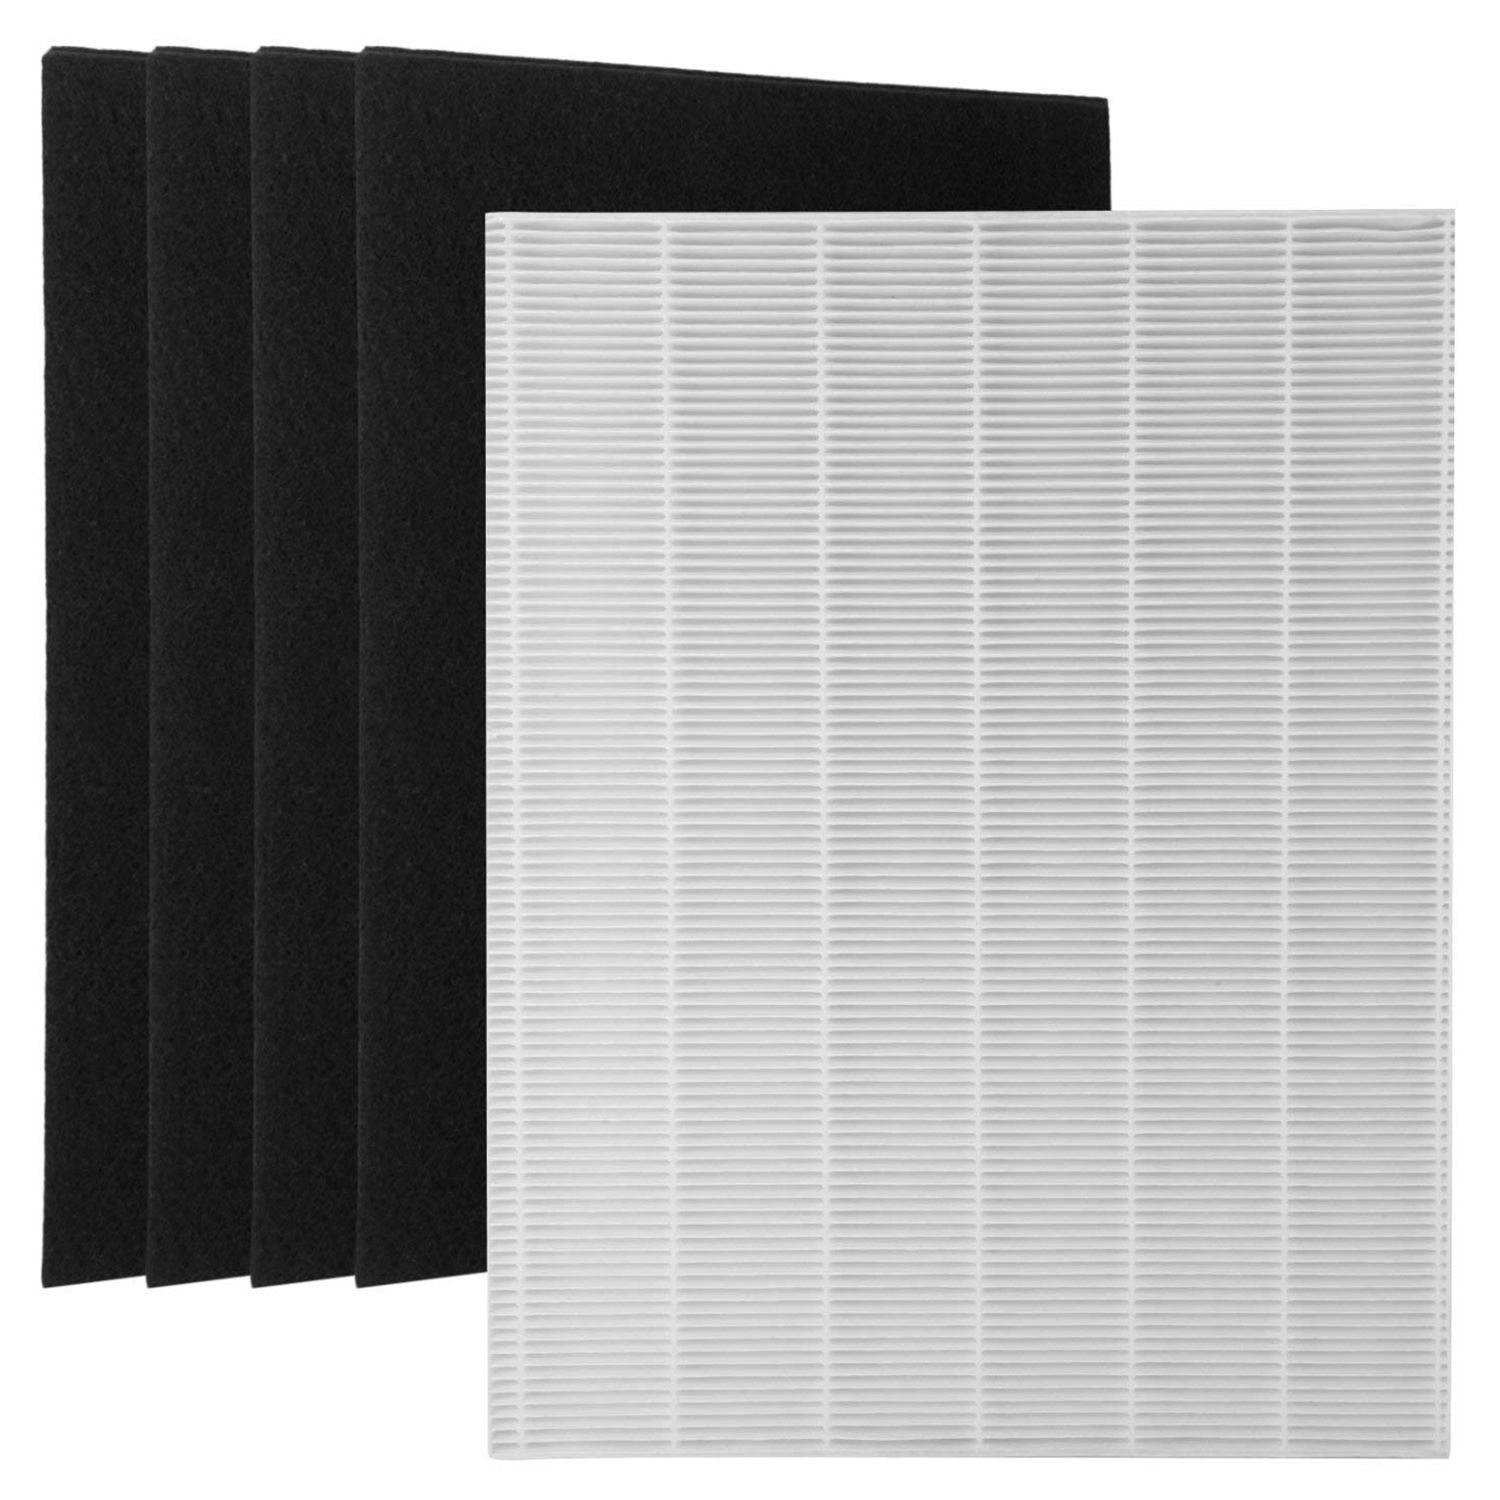 Hot Sale 1 True HEPA Filter + 4 Carbon Replacement Filters A 115115 Size 21 for Winix PlasmaWave Air purifier 5300 6300 5300-2 цена